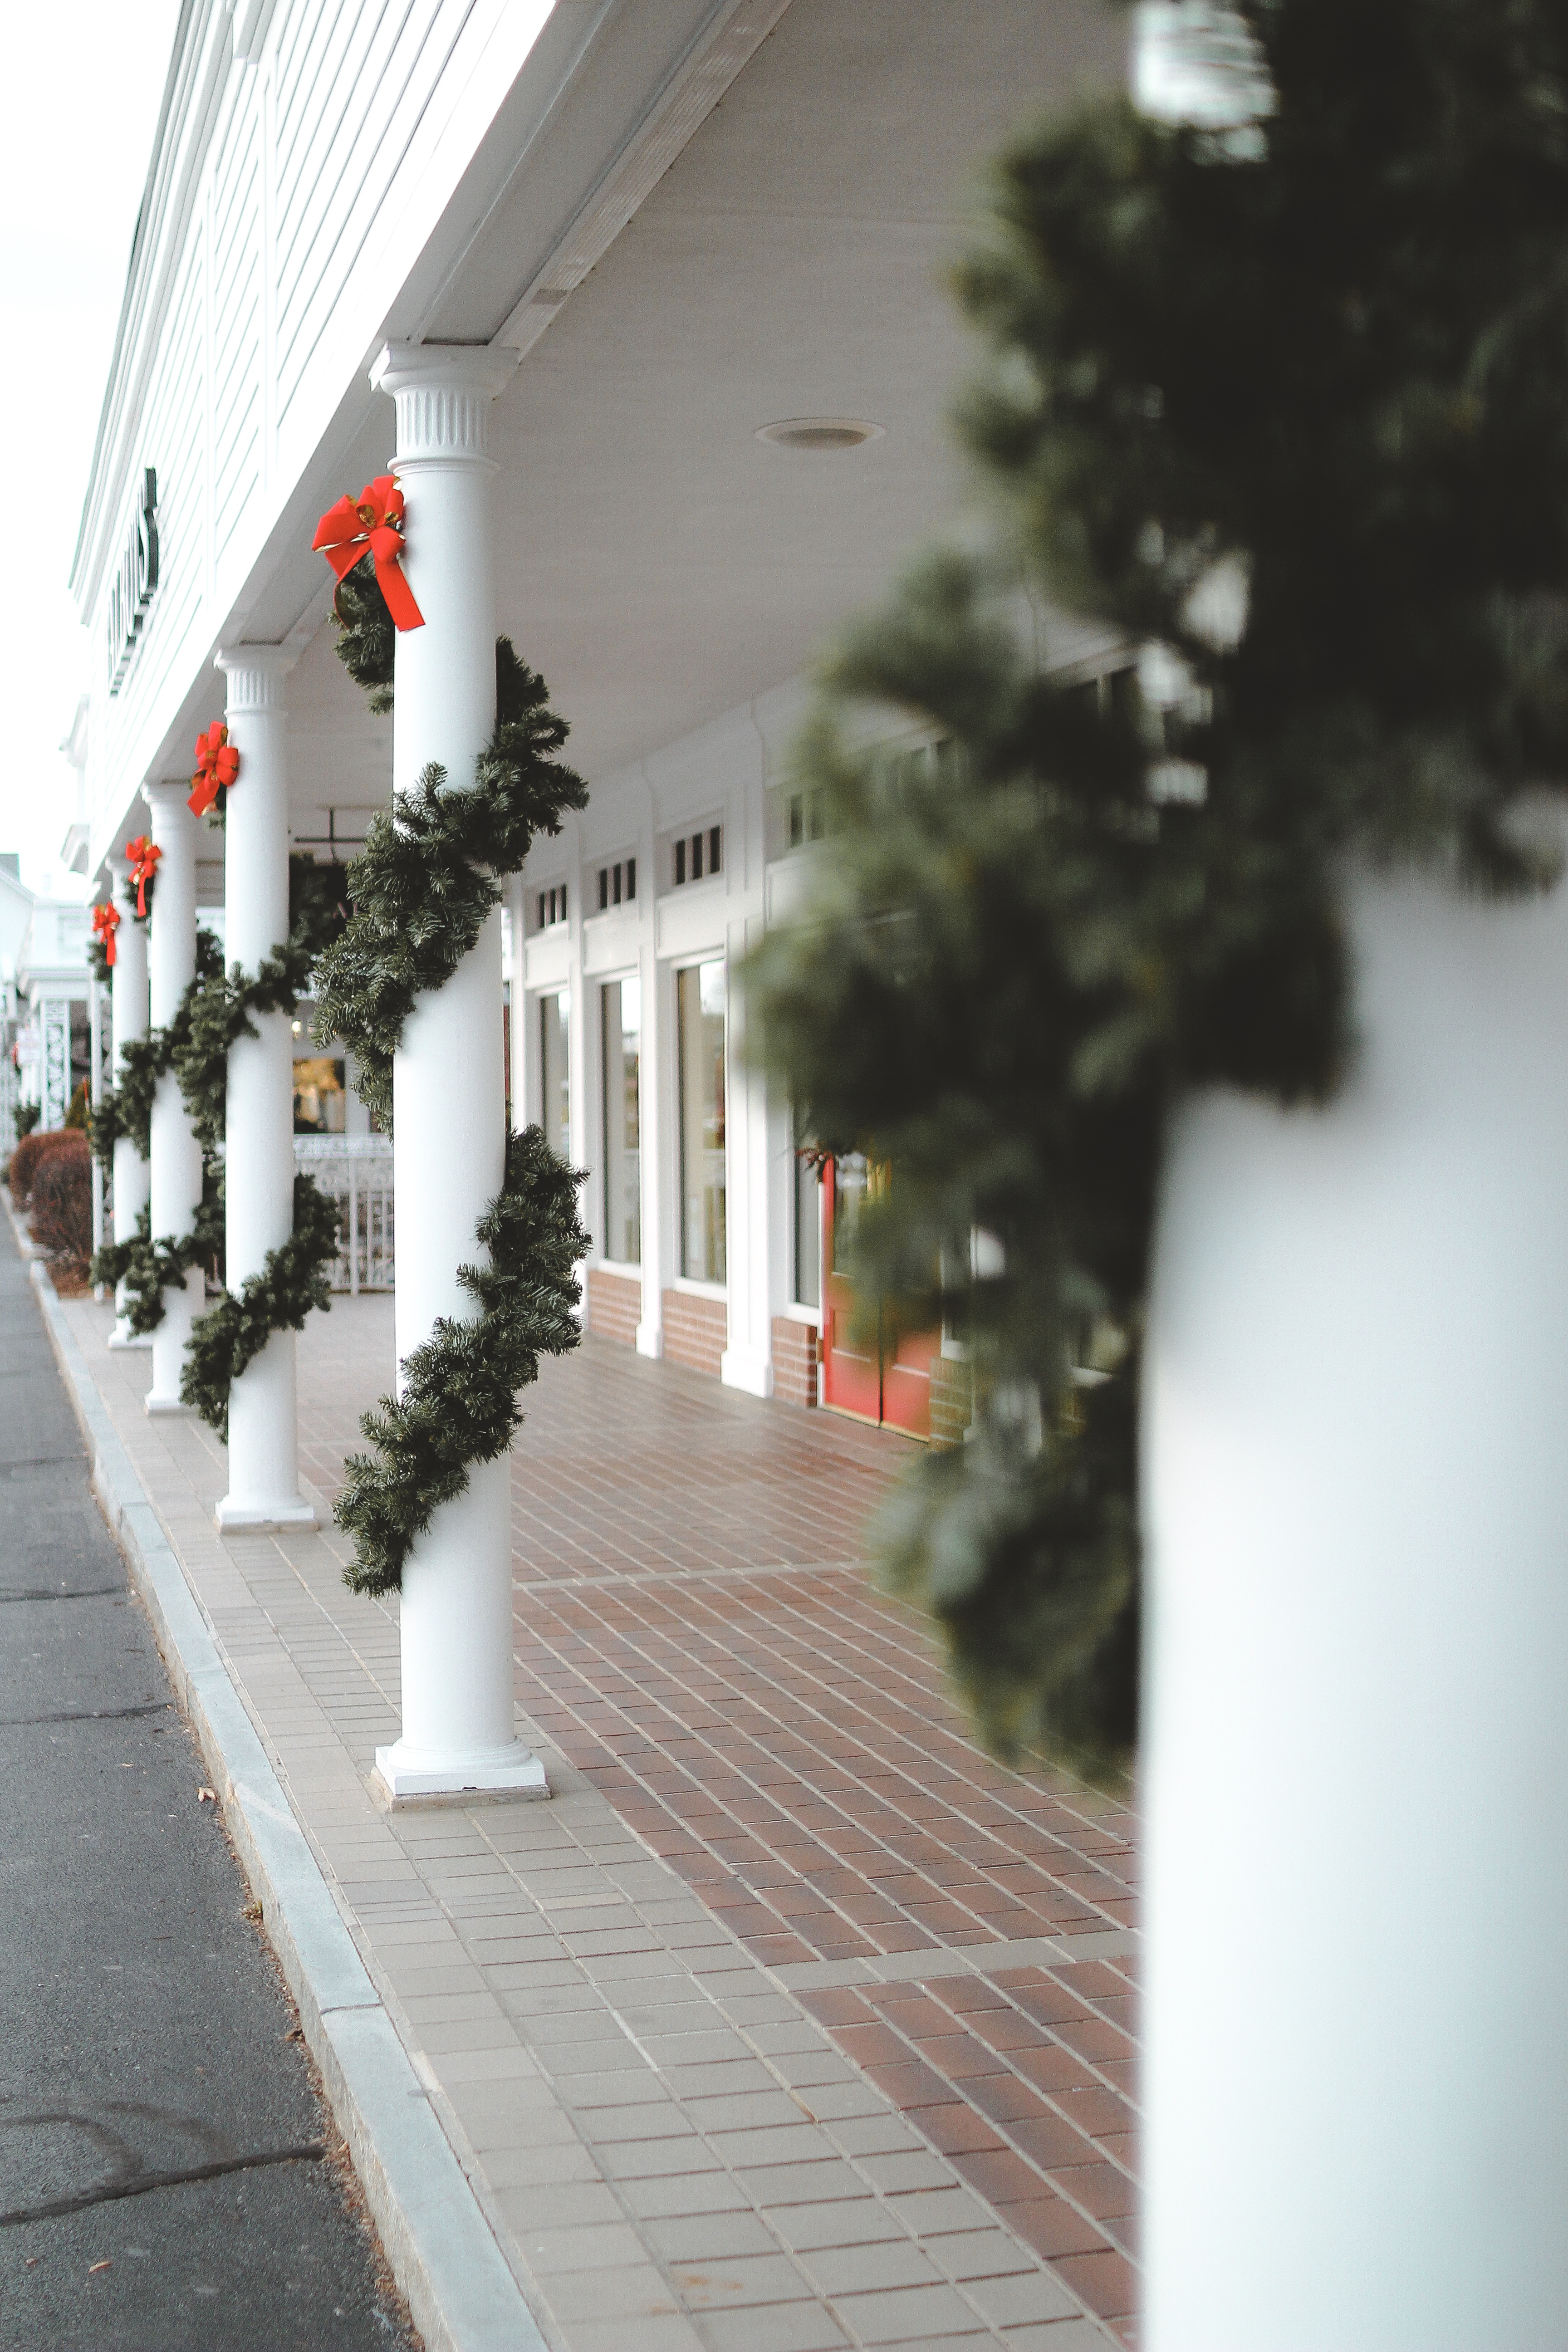 The Longmeadow shops decorated for Christmas with wreaths wrapped around poles.